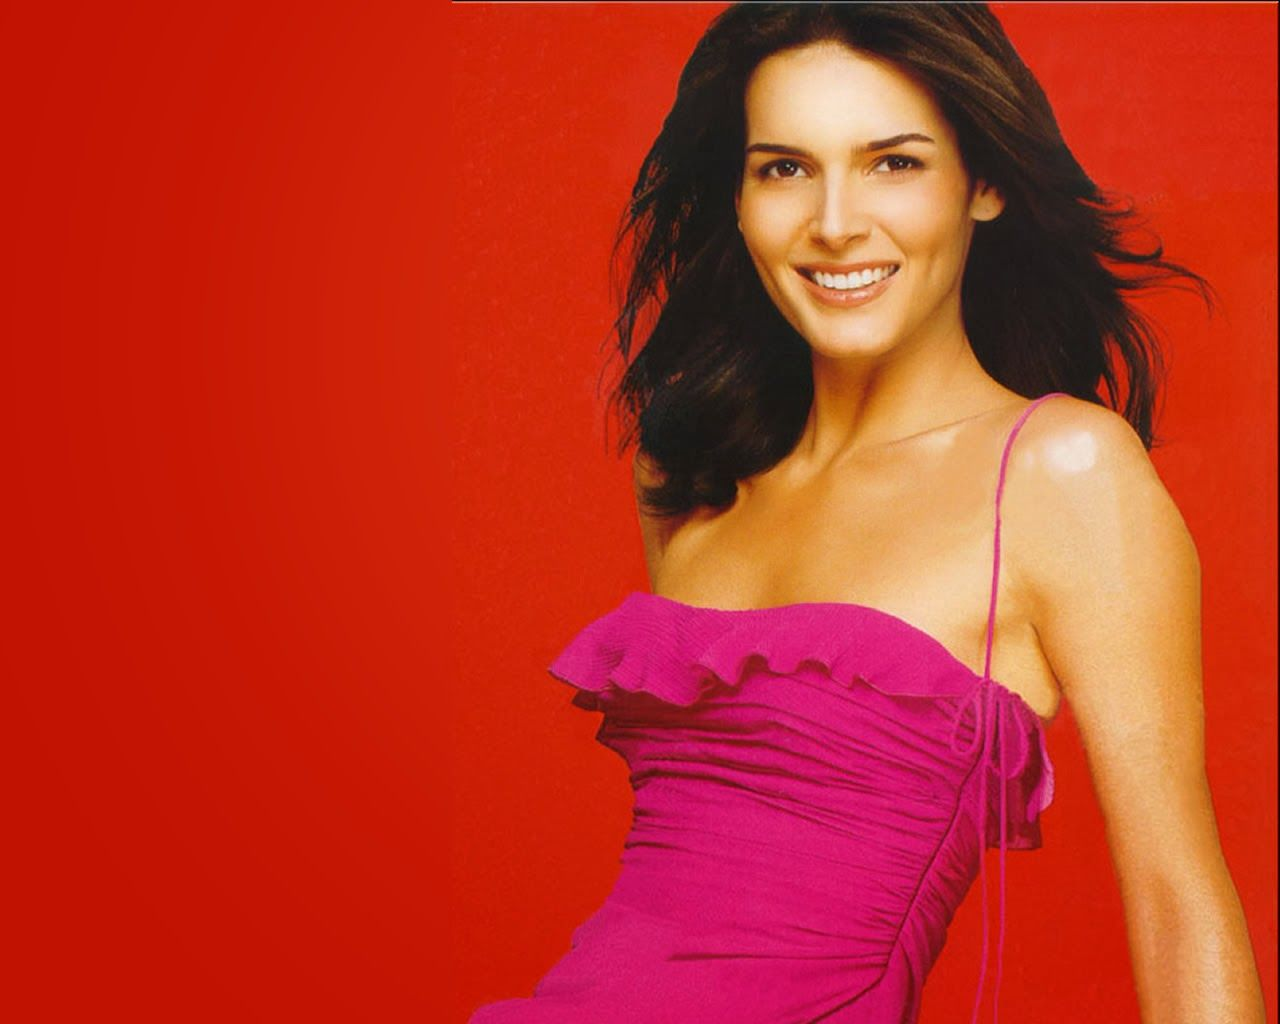 1280x1024 - Angie Harmon Wallpapers 13